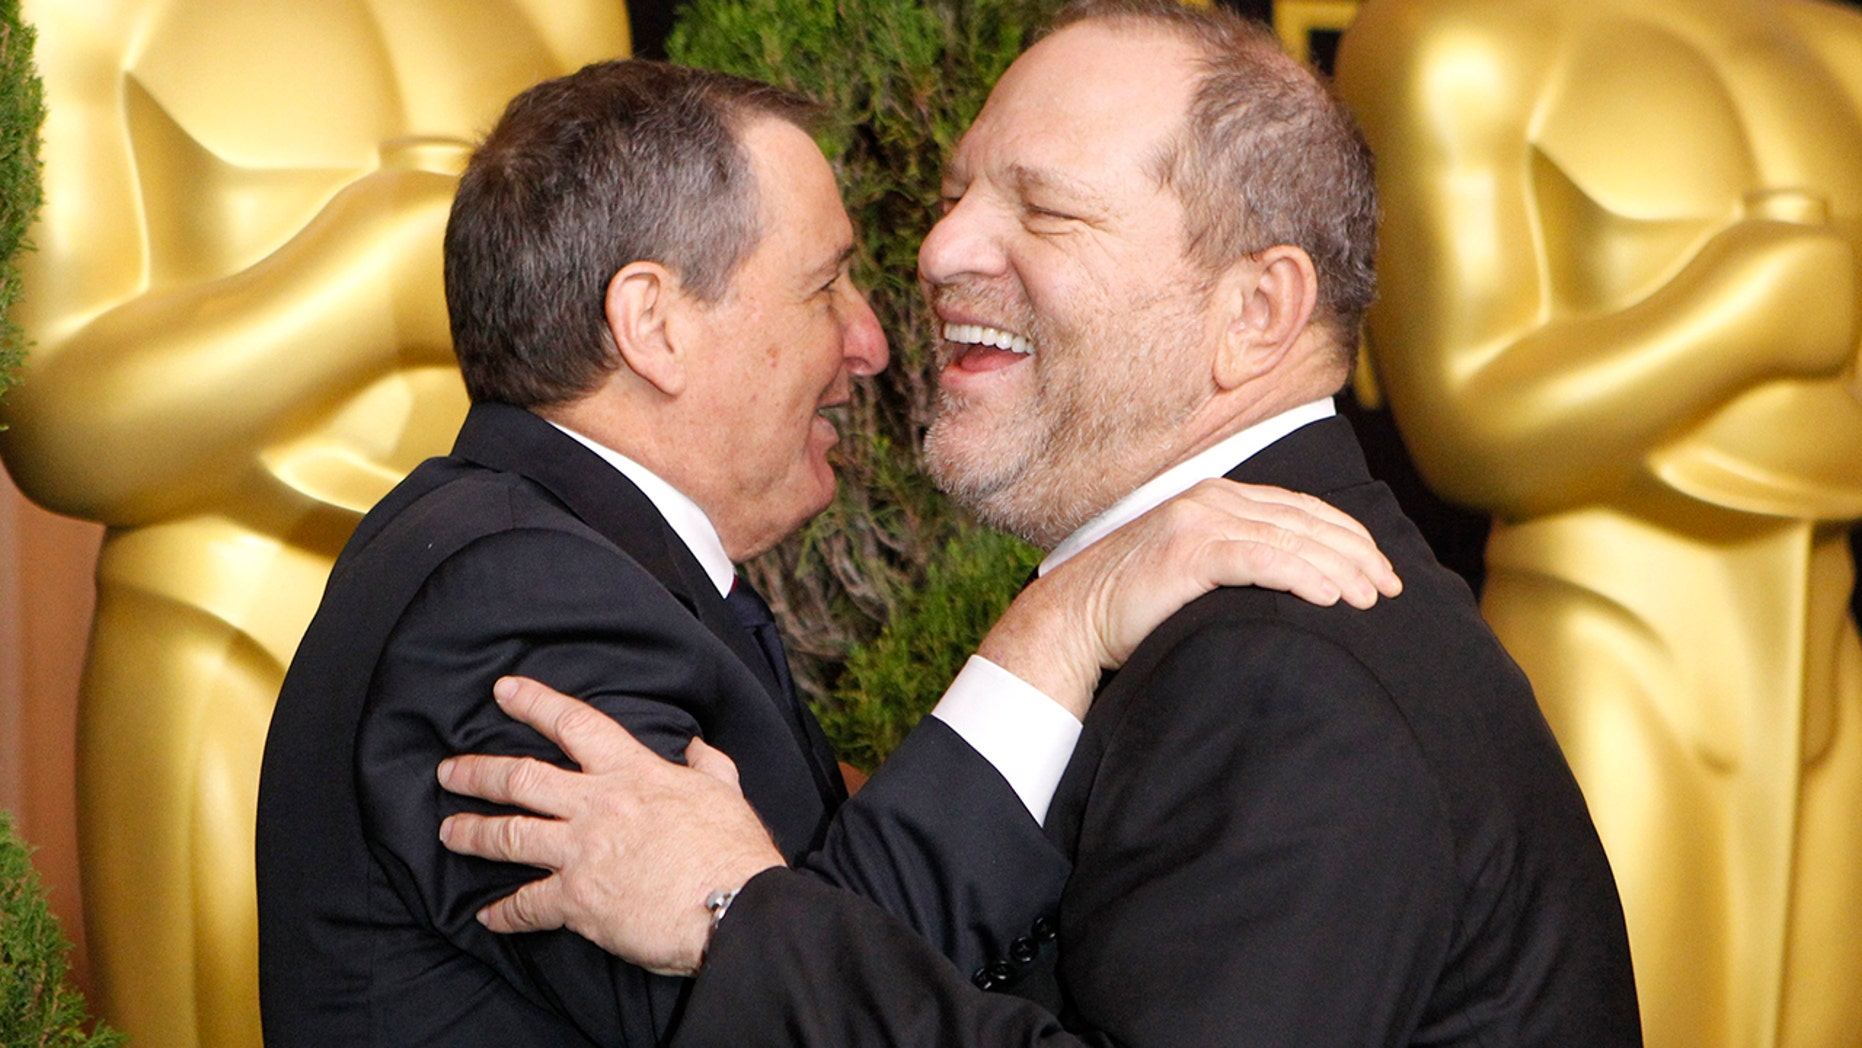 Tom Sherak, former president of the Academy of Motion Picture Arts and Sciences, hugs Harvey Weinstein at the 84th Academy Awards nominees luncheon. (2012)